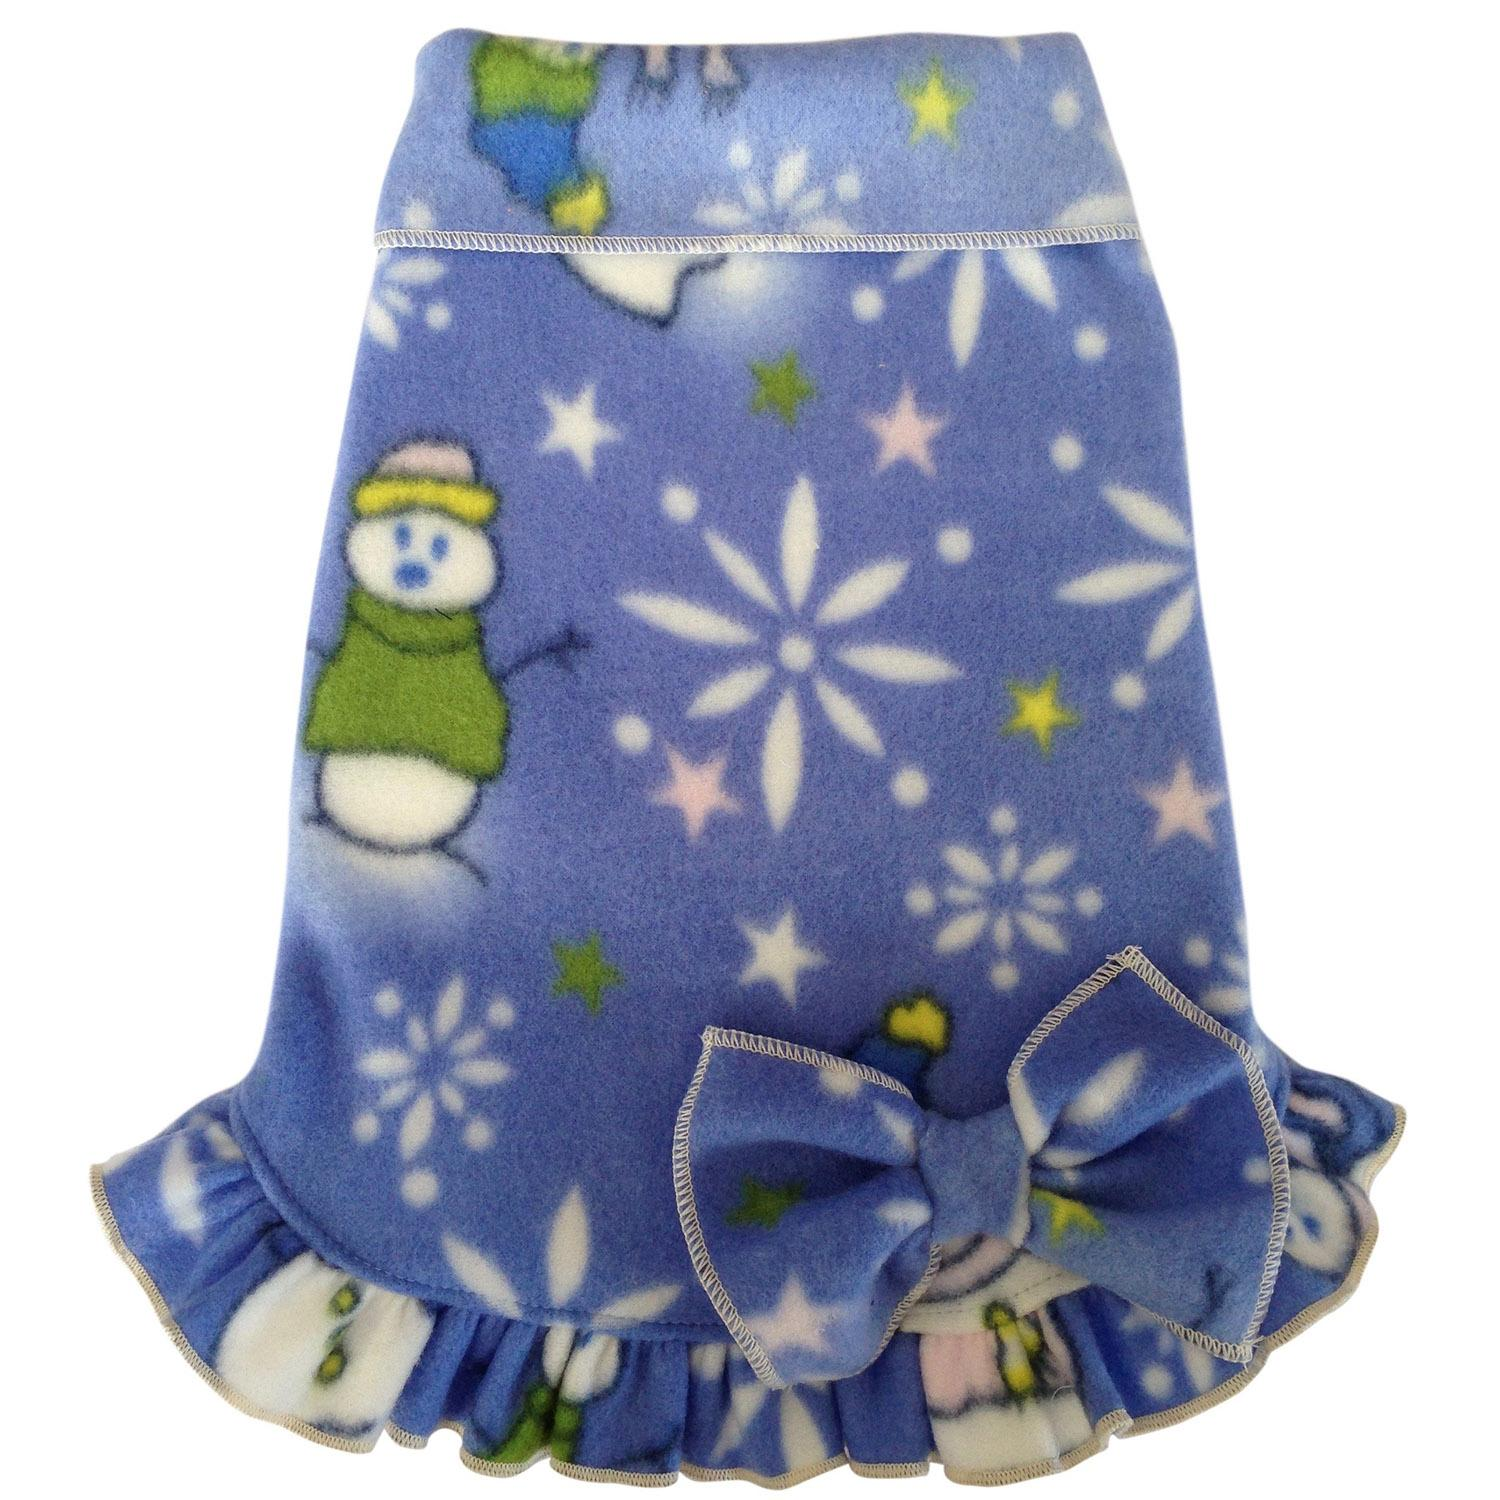 Snowman Snowflake Pullover Dog Dress With Bow - Light Blue